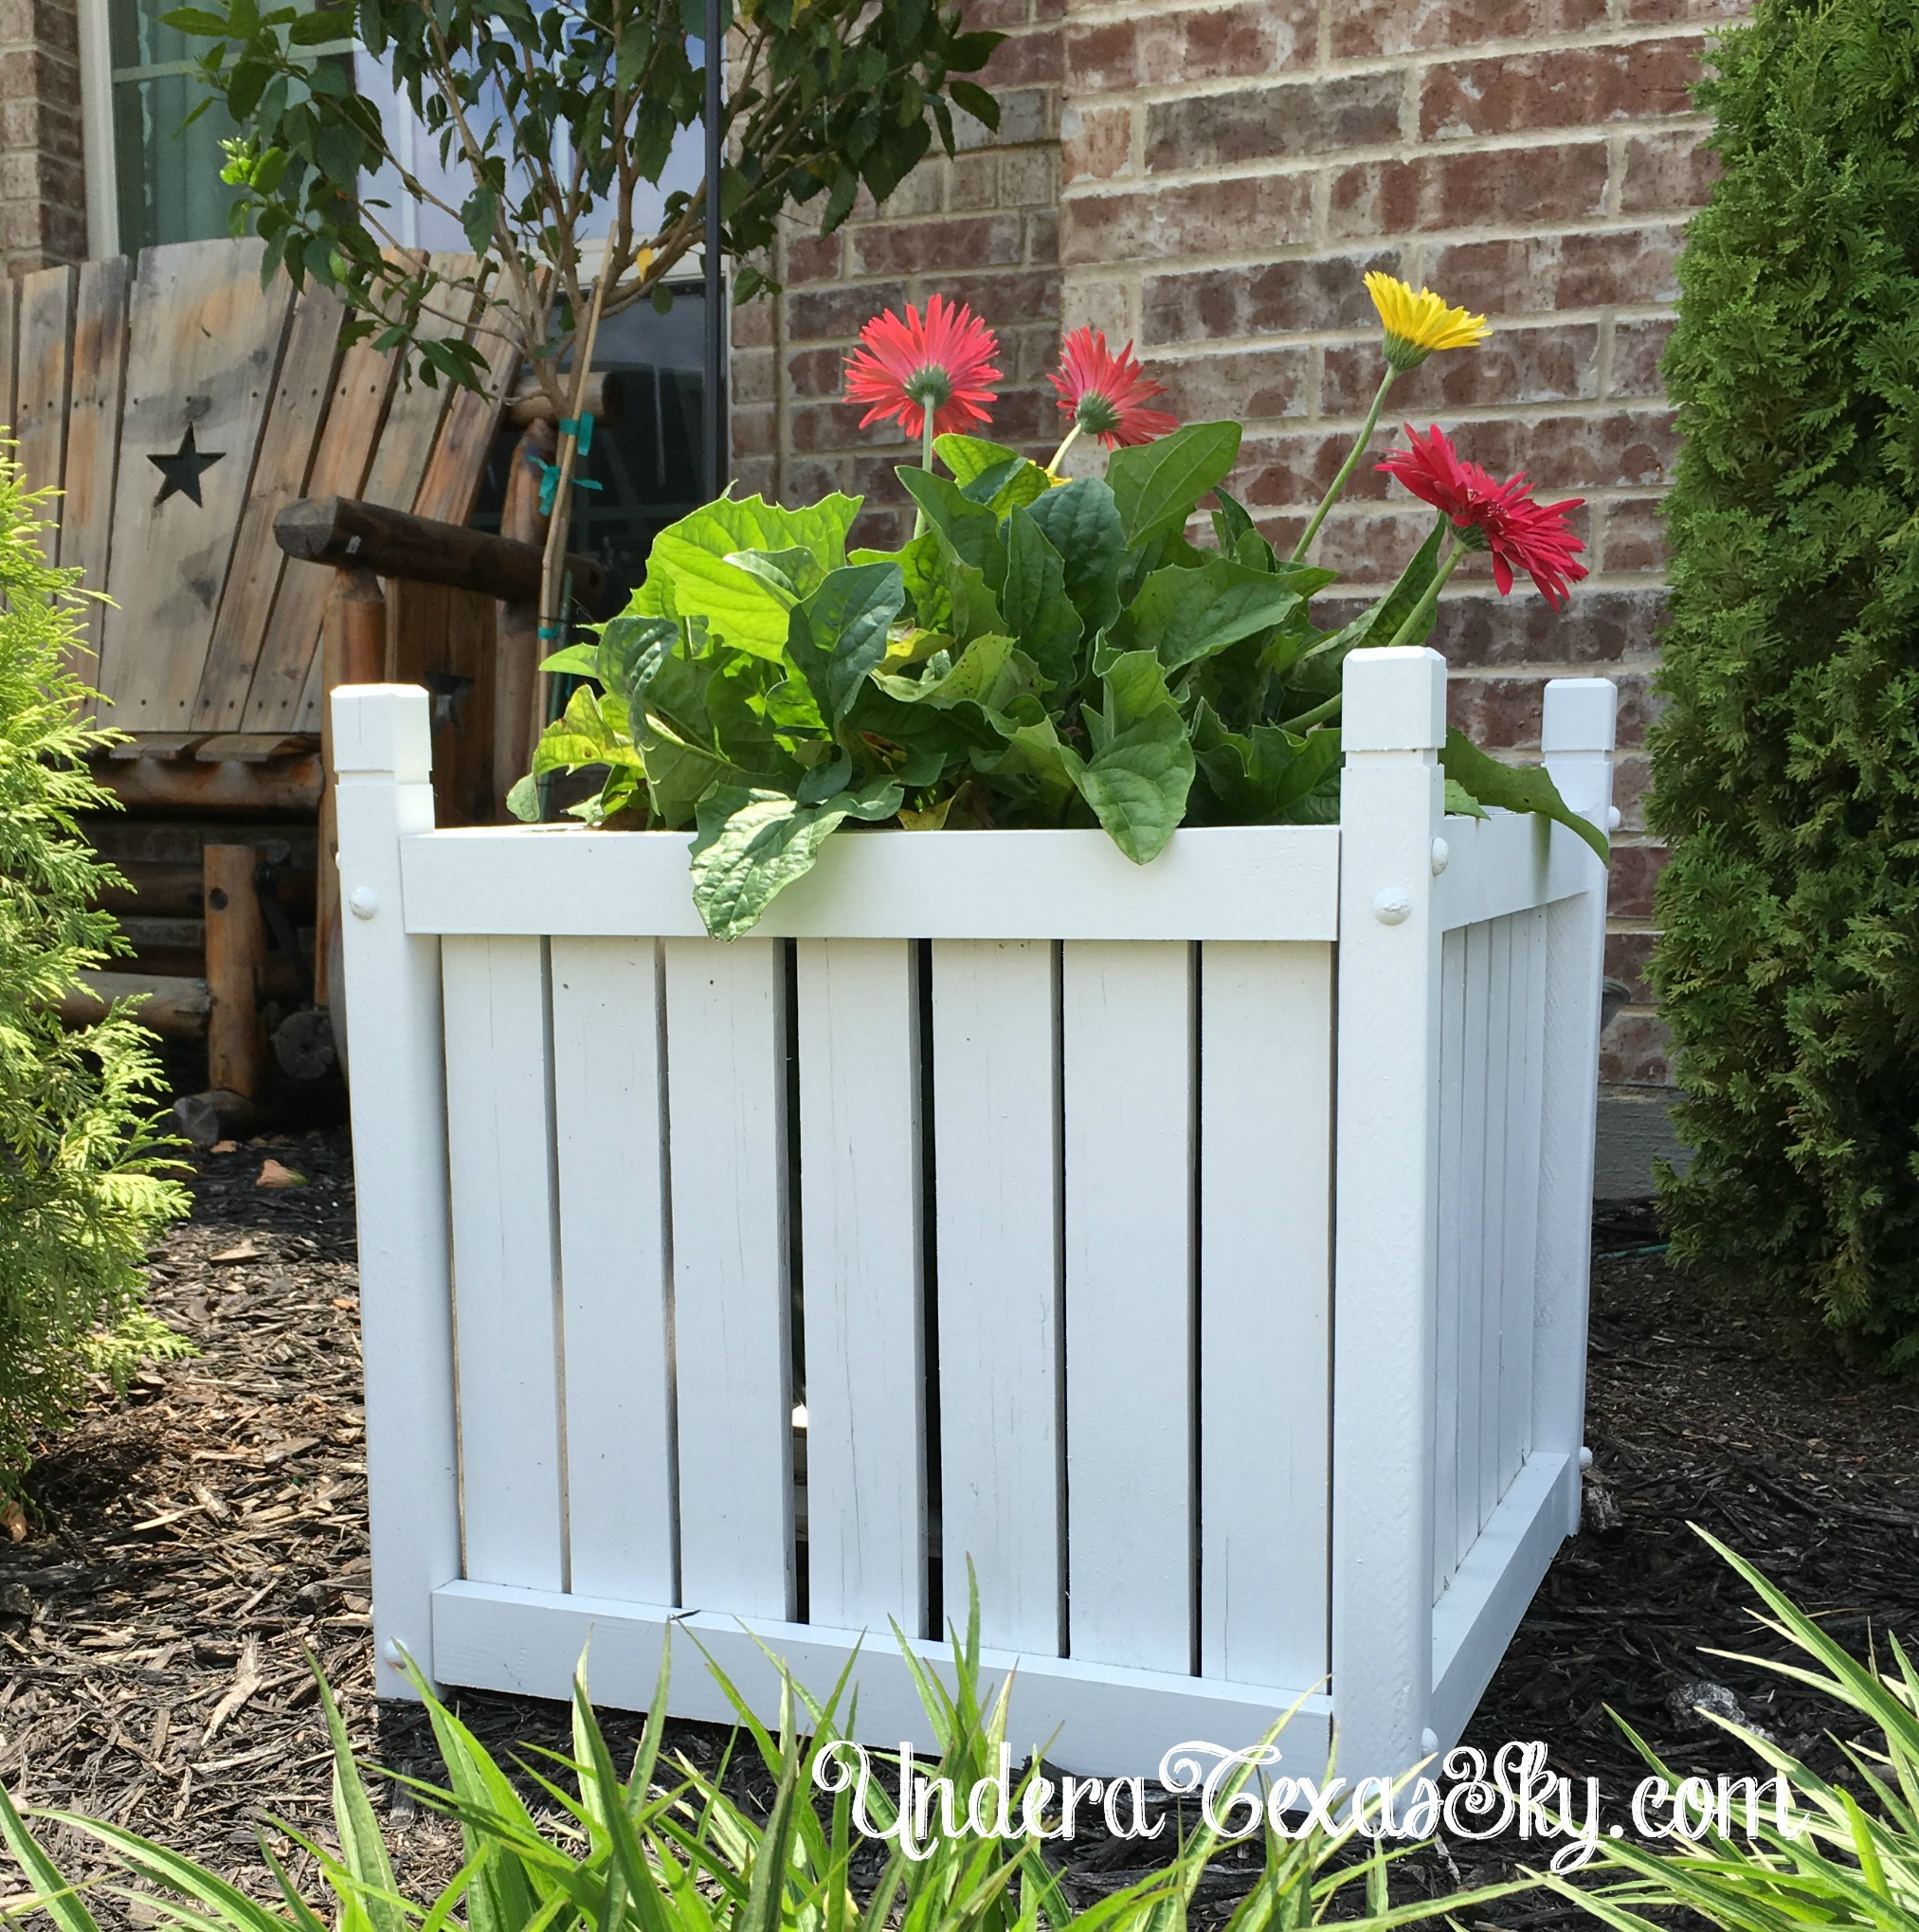 pots part paintbrushes wooden pans planter wood photos inspiration boxes dma box fences reclaimed and fencing